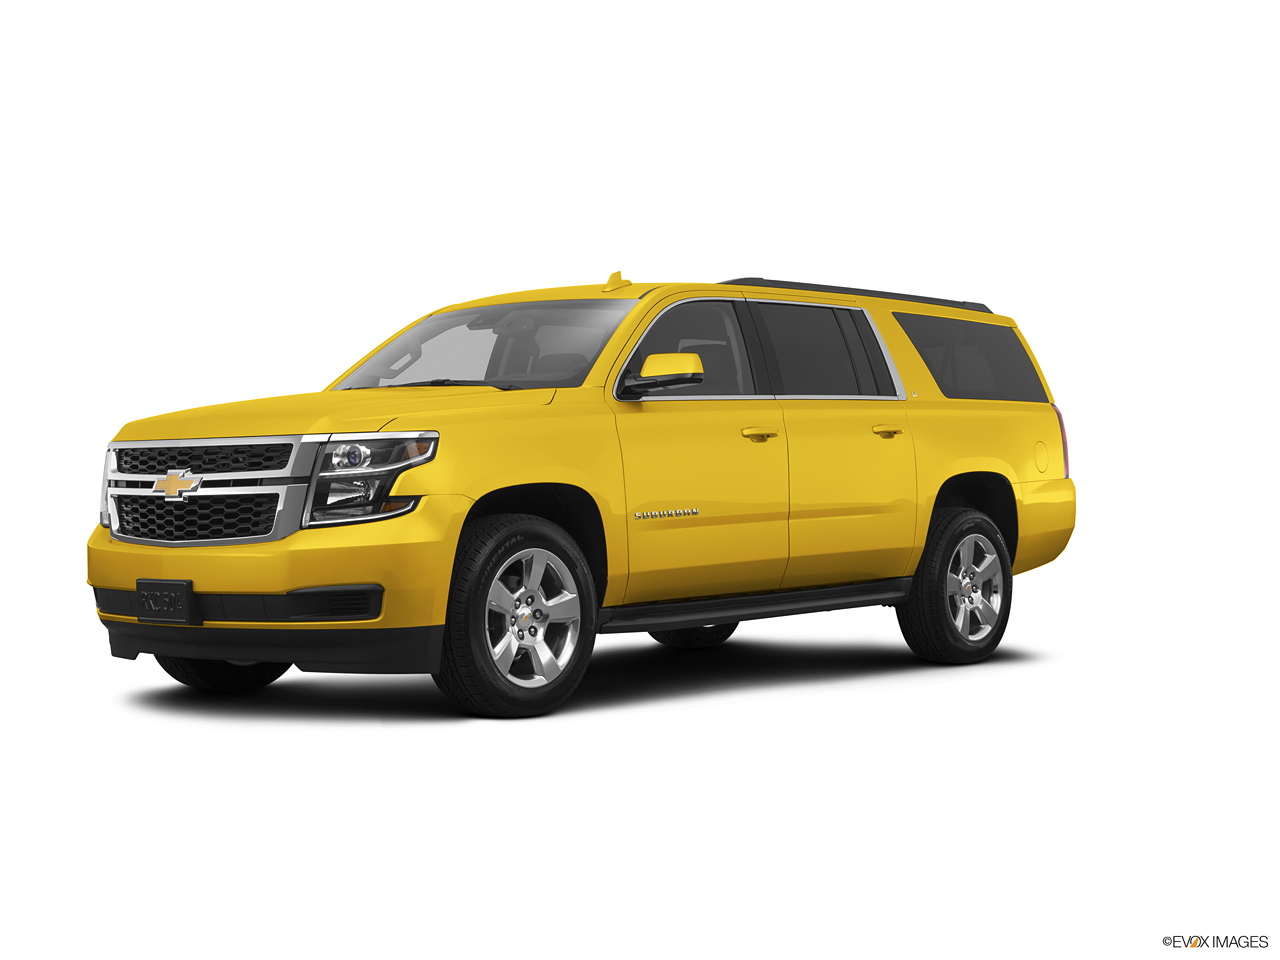 chevrolet suburban 2016 5 3l lt in uae new car prices. Black Bedroom Furniture Sets. Home Design Ideas